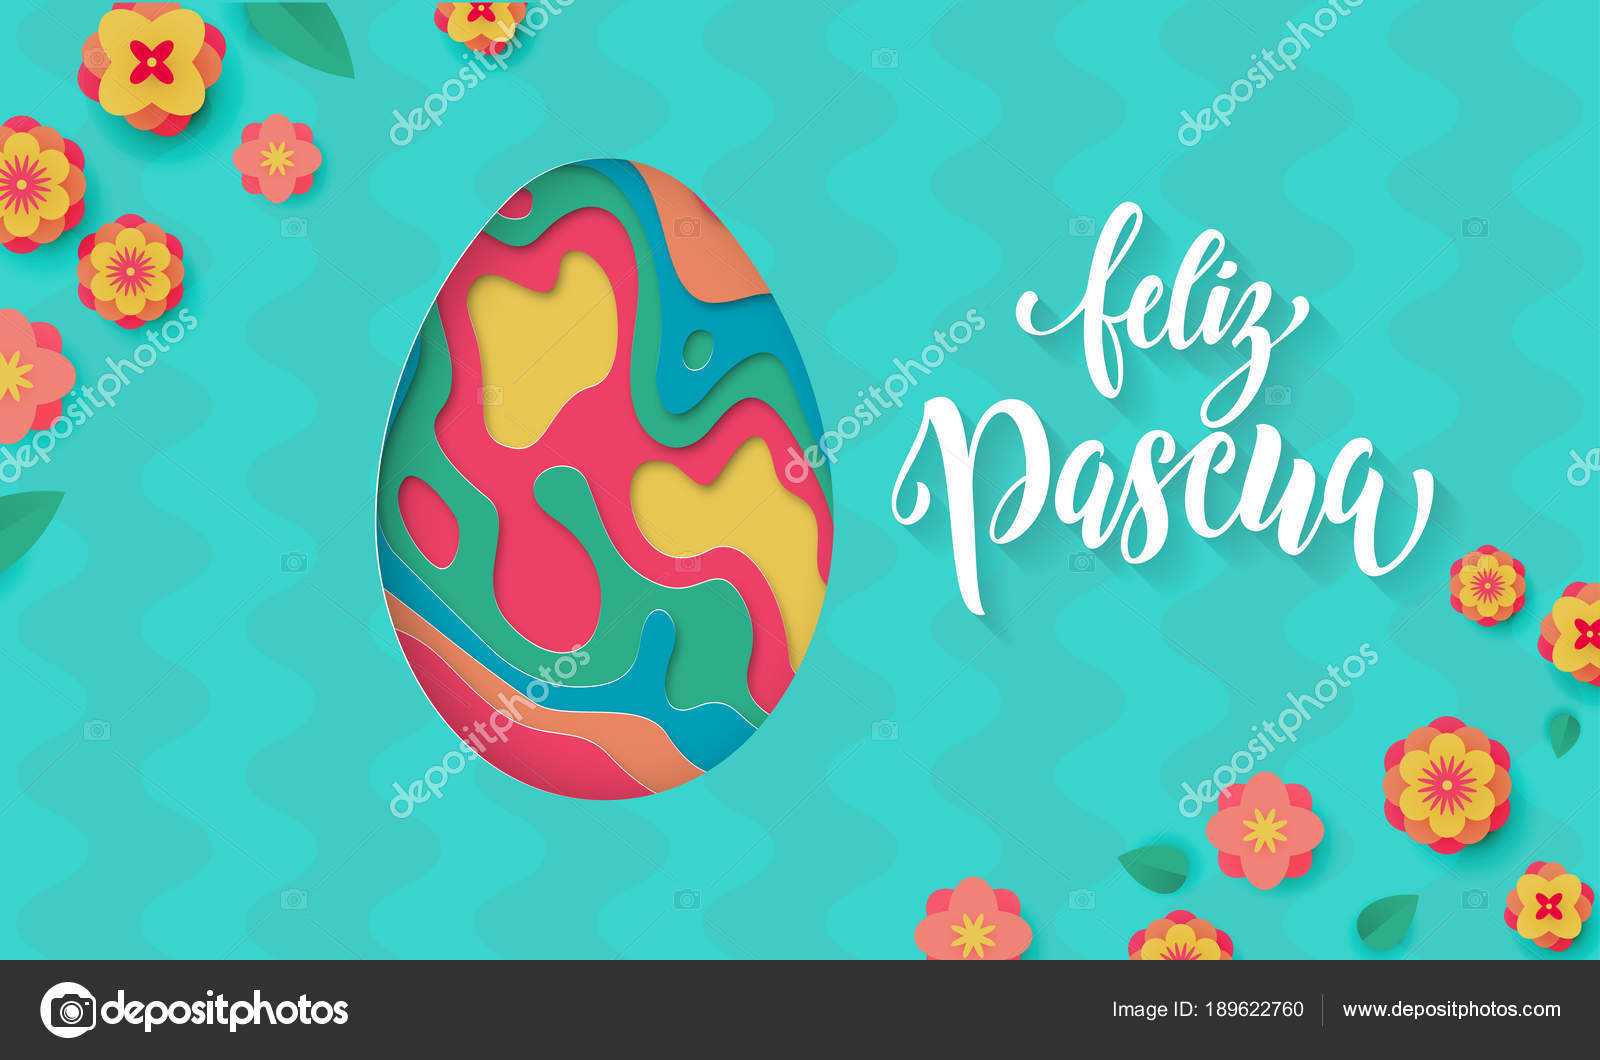 Spanish happy easter greeting card of egg paper cut spring flowers spanish happy easter greeting card of egg paper cut spring flowers pattern on floral background m4hsunfo